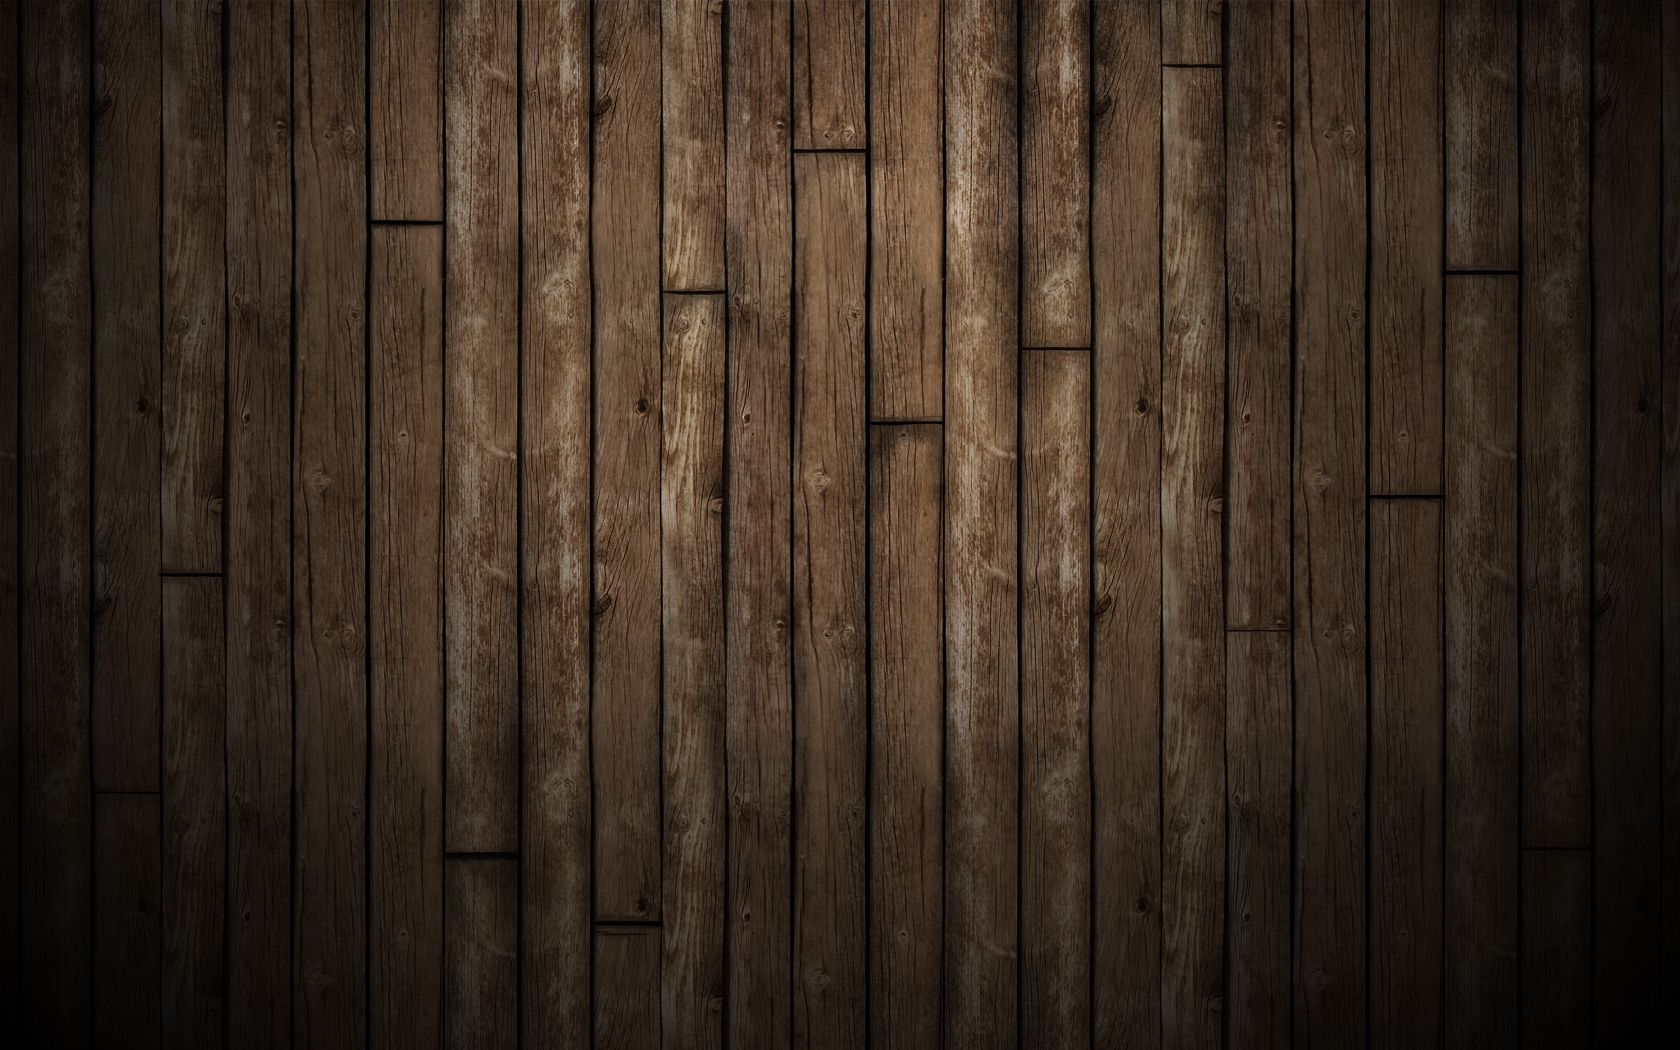 Rustic Wood Wallpapers 1080p On Wallpaper 1080p HD